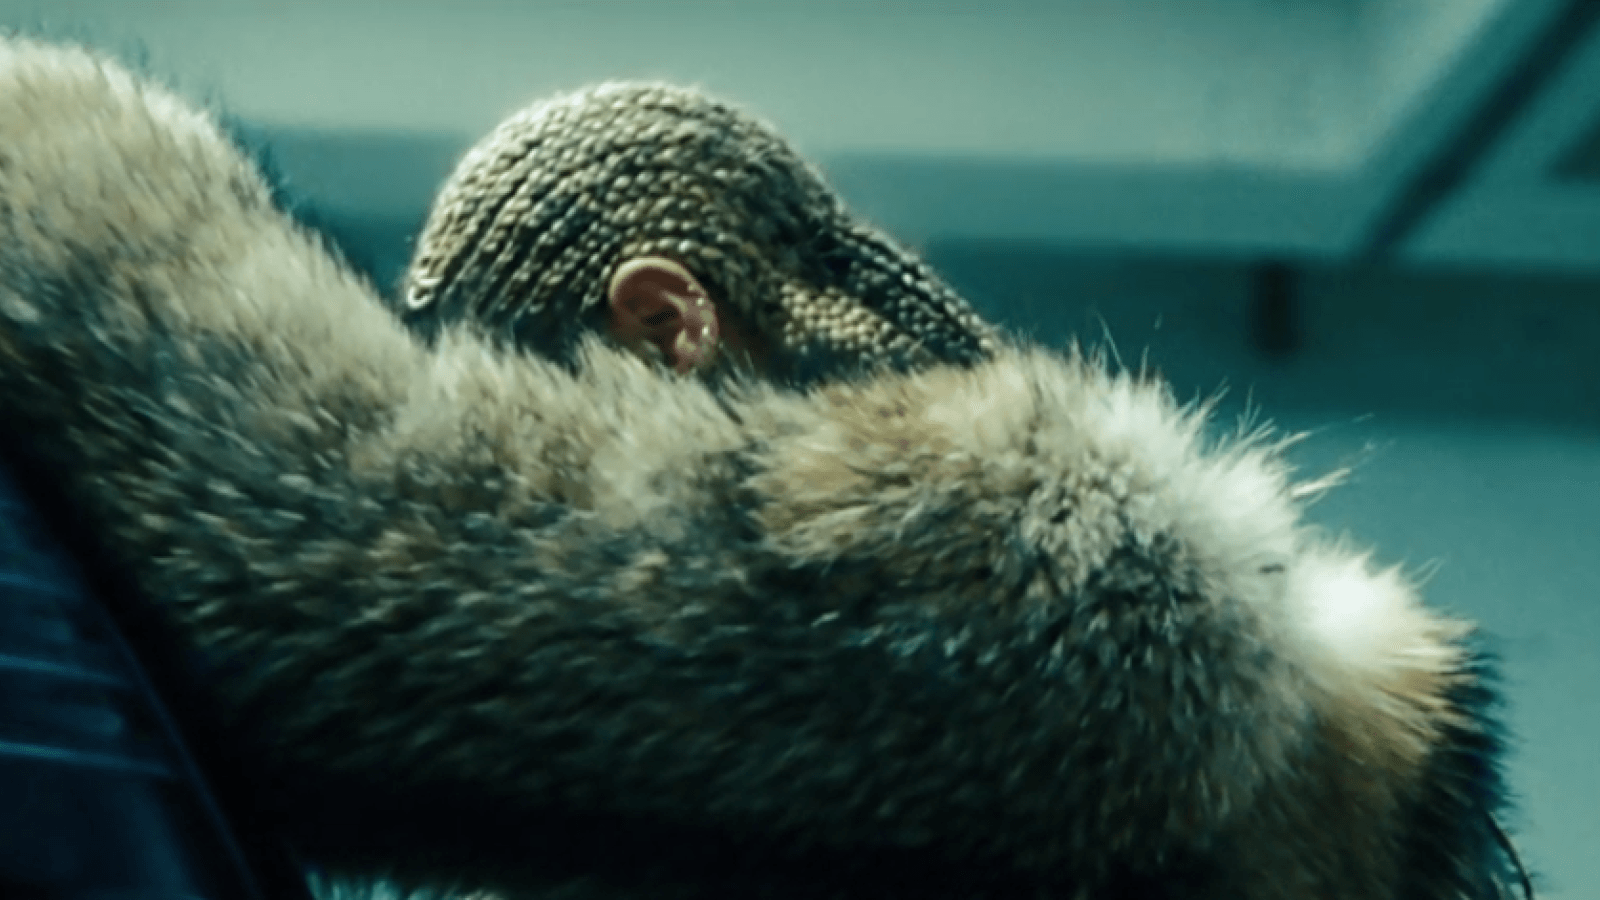 Beyoncé's latest album shows her struggle with her husband's infidelity as well as showing her pride as an African American, but the ultimate message, the theme of the album, is about overcoming and  making lemonade when life serves you lemons.